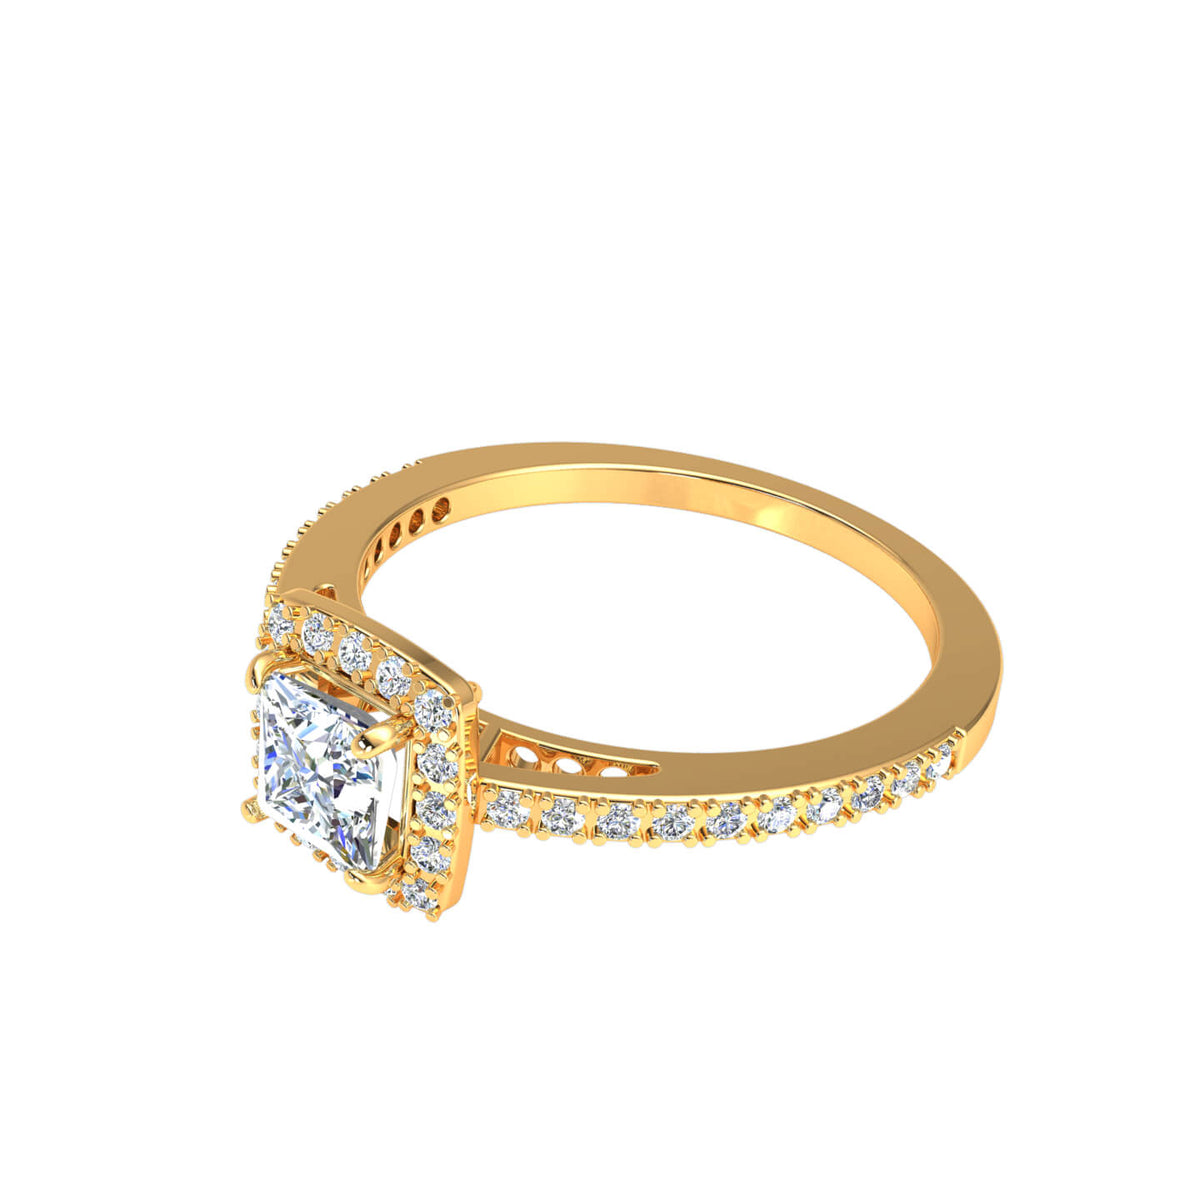 0.90 Ct Princess FG VS Diamond Solitaire Halo Engagement Ring For Women 14k Gold